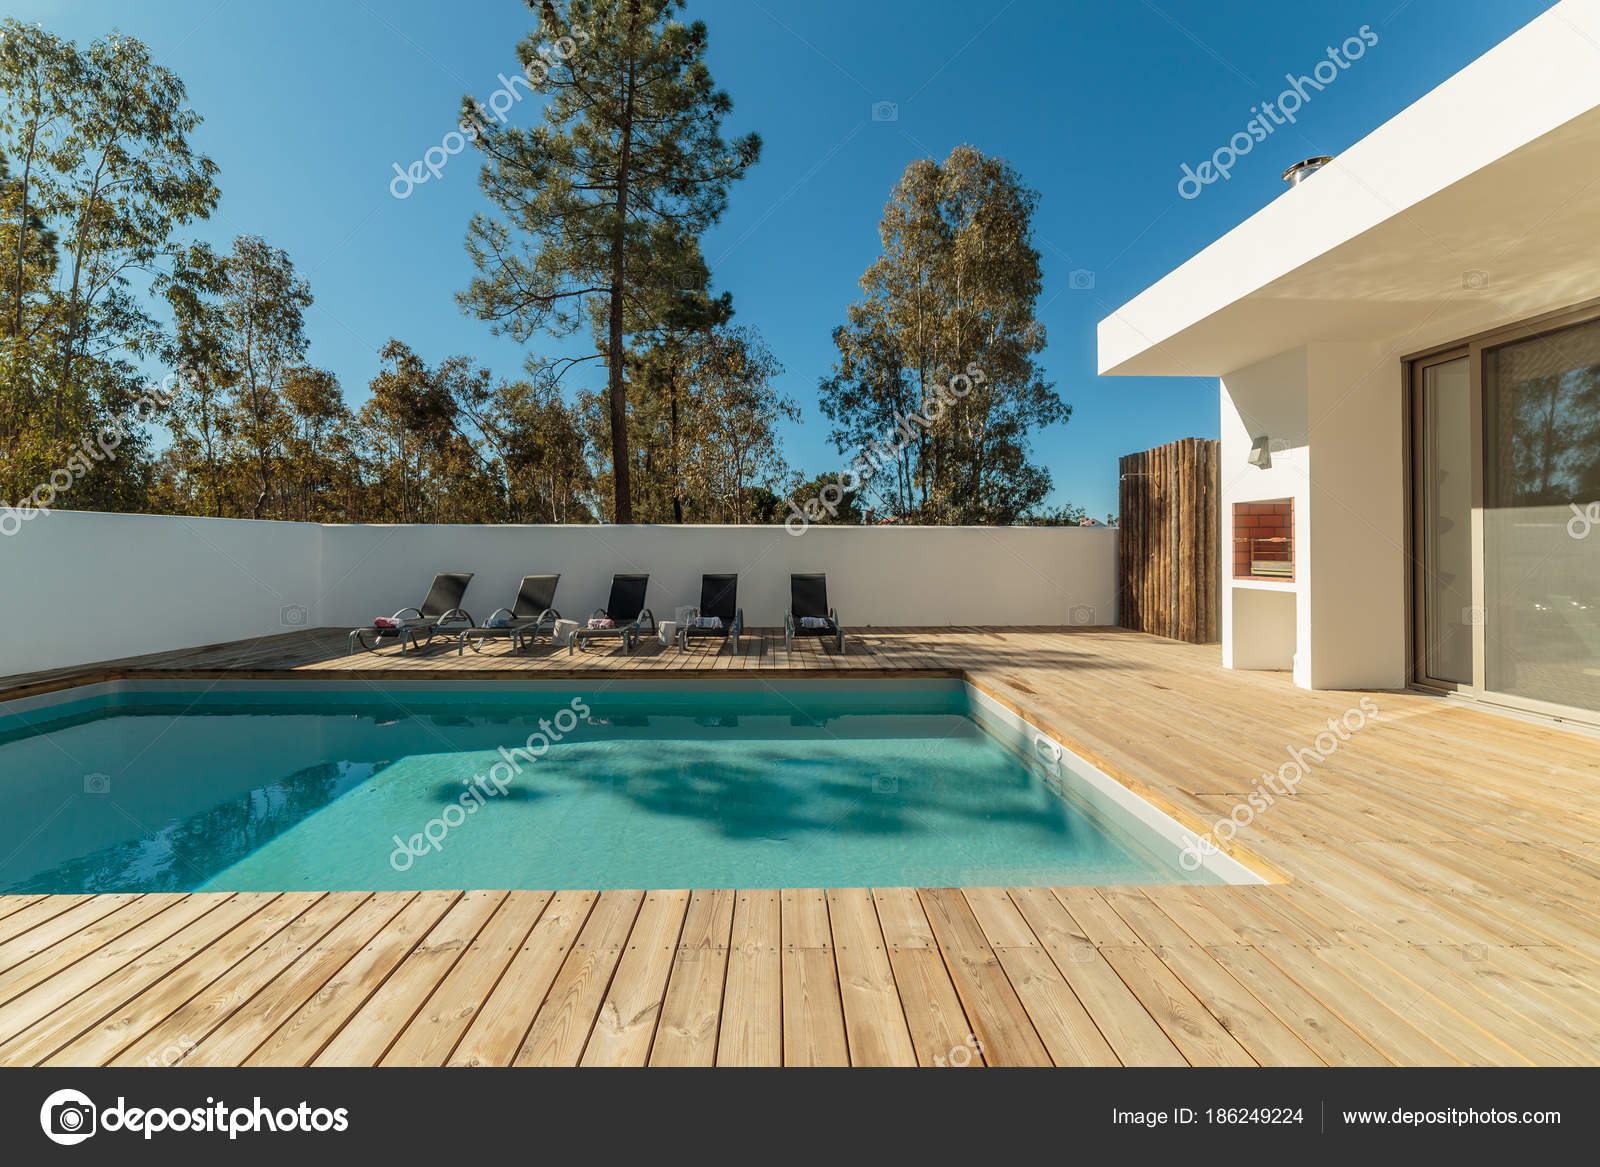 Modern House With Garden Swimming Pool And Wooden Deck Stock Photo Image By Papandreos 186249224